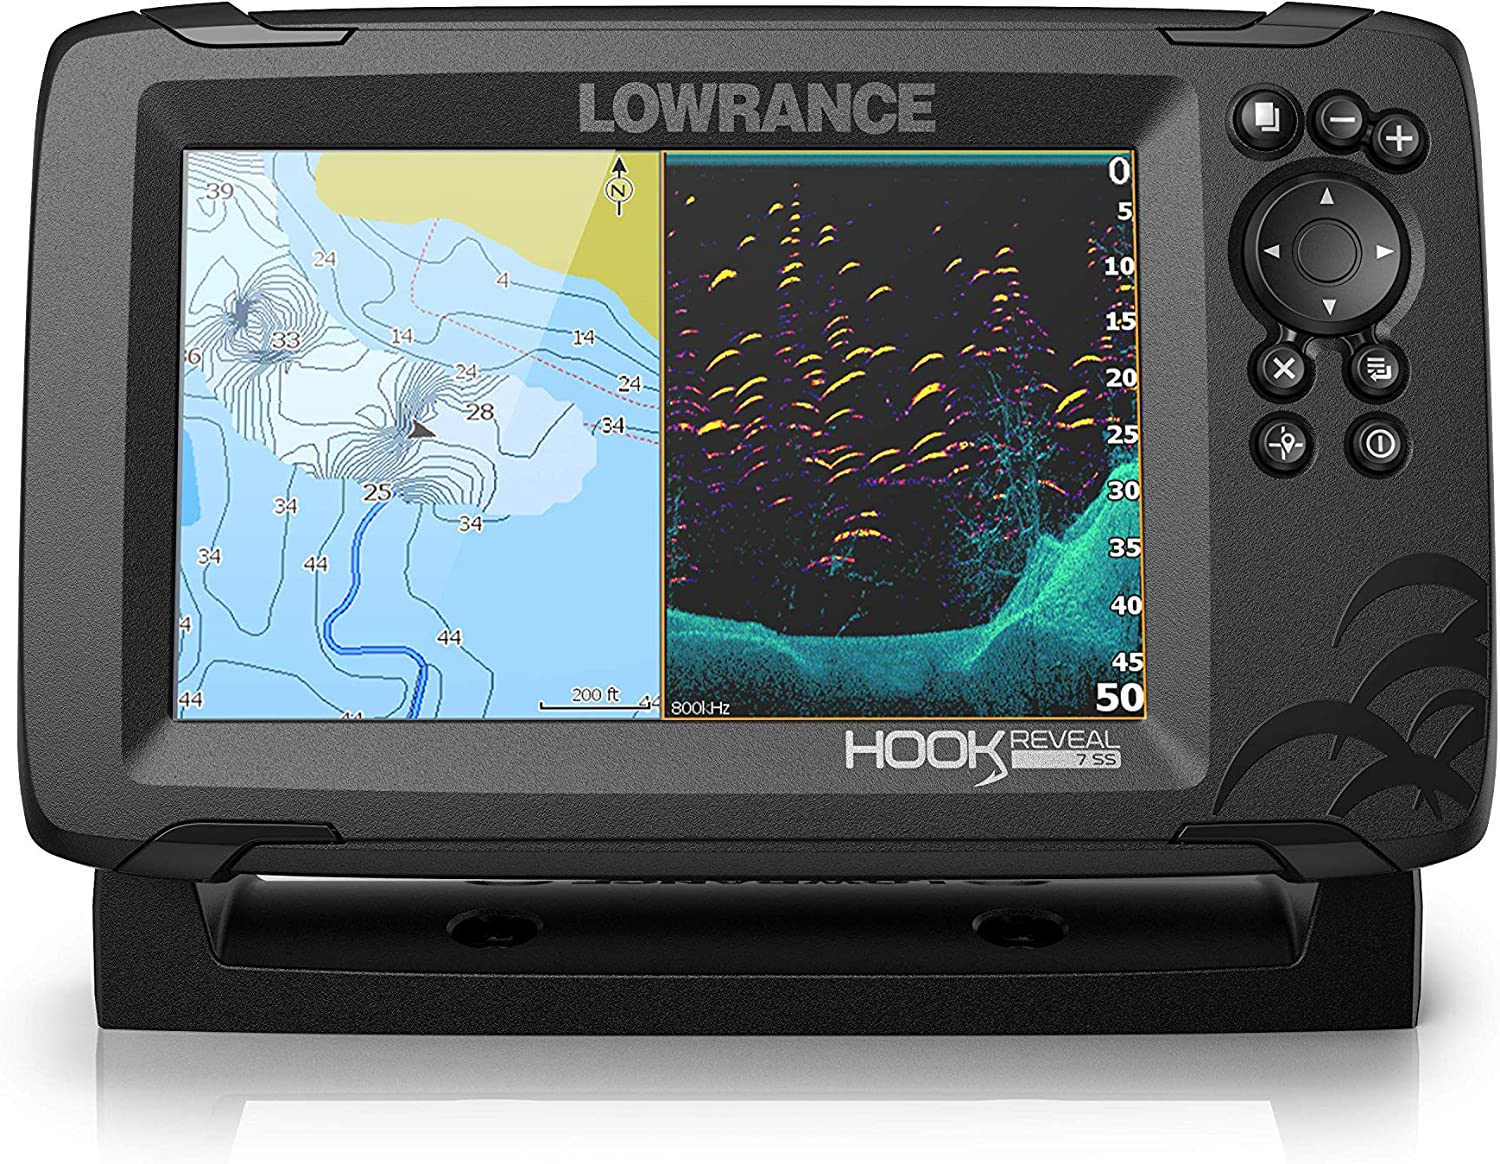 Lowrance Hook Reveal Fish Finder